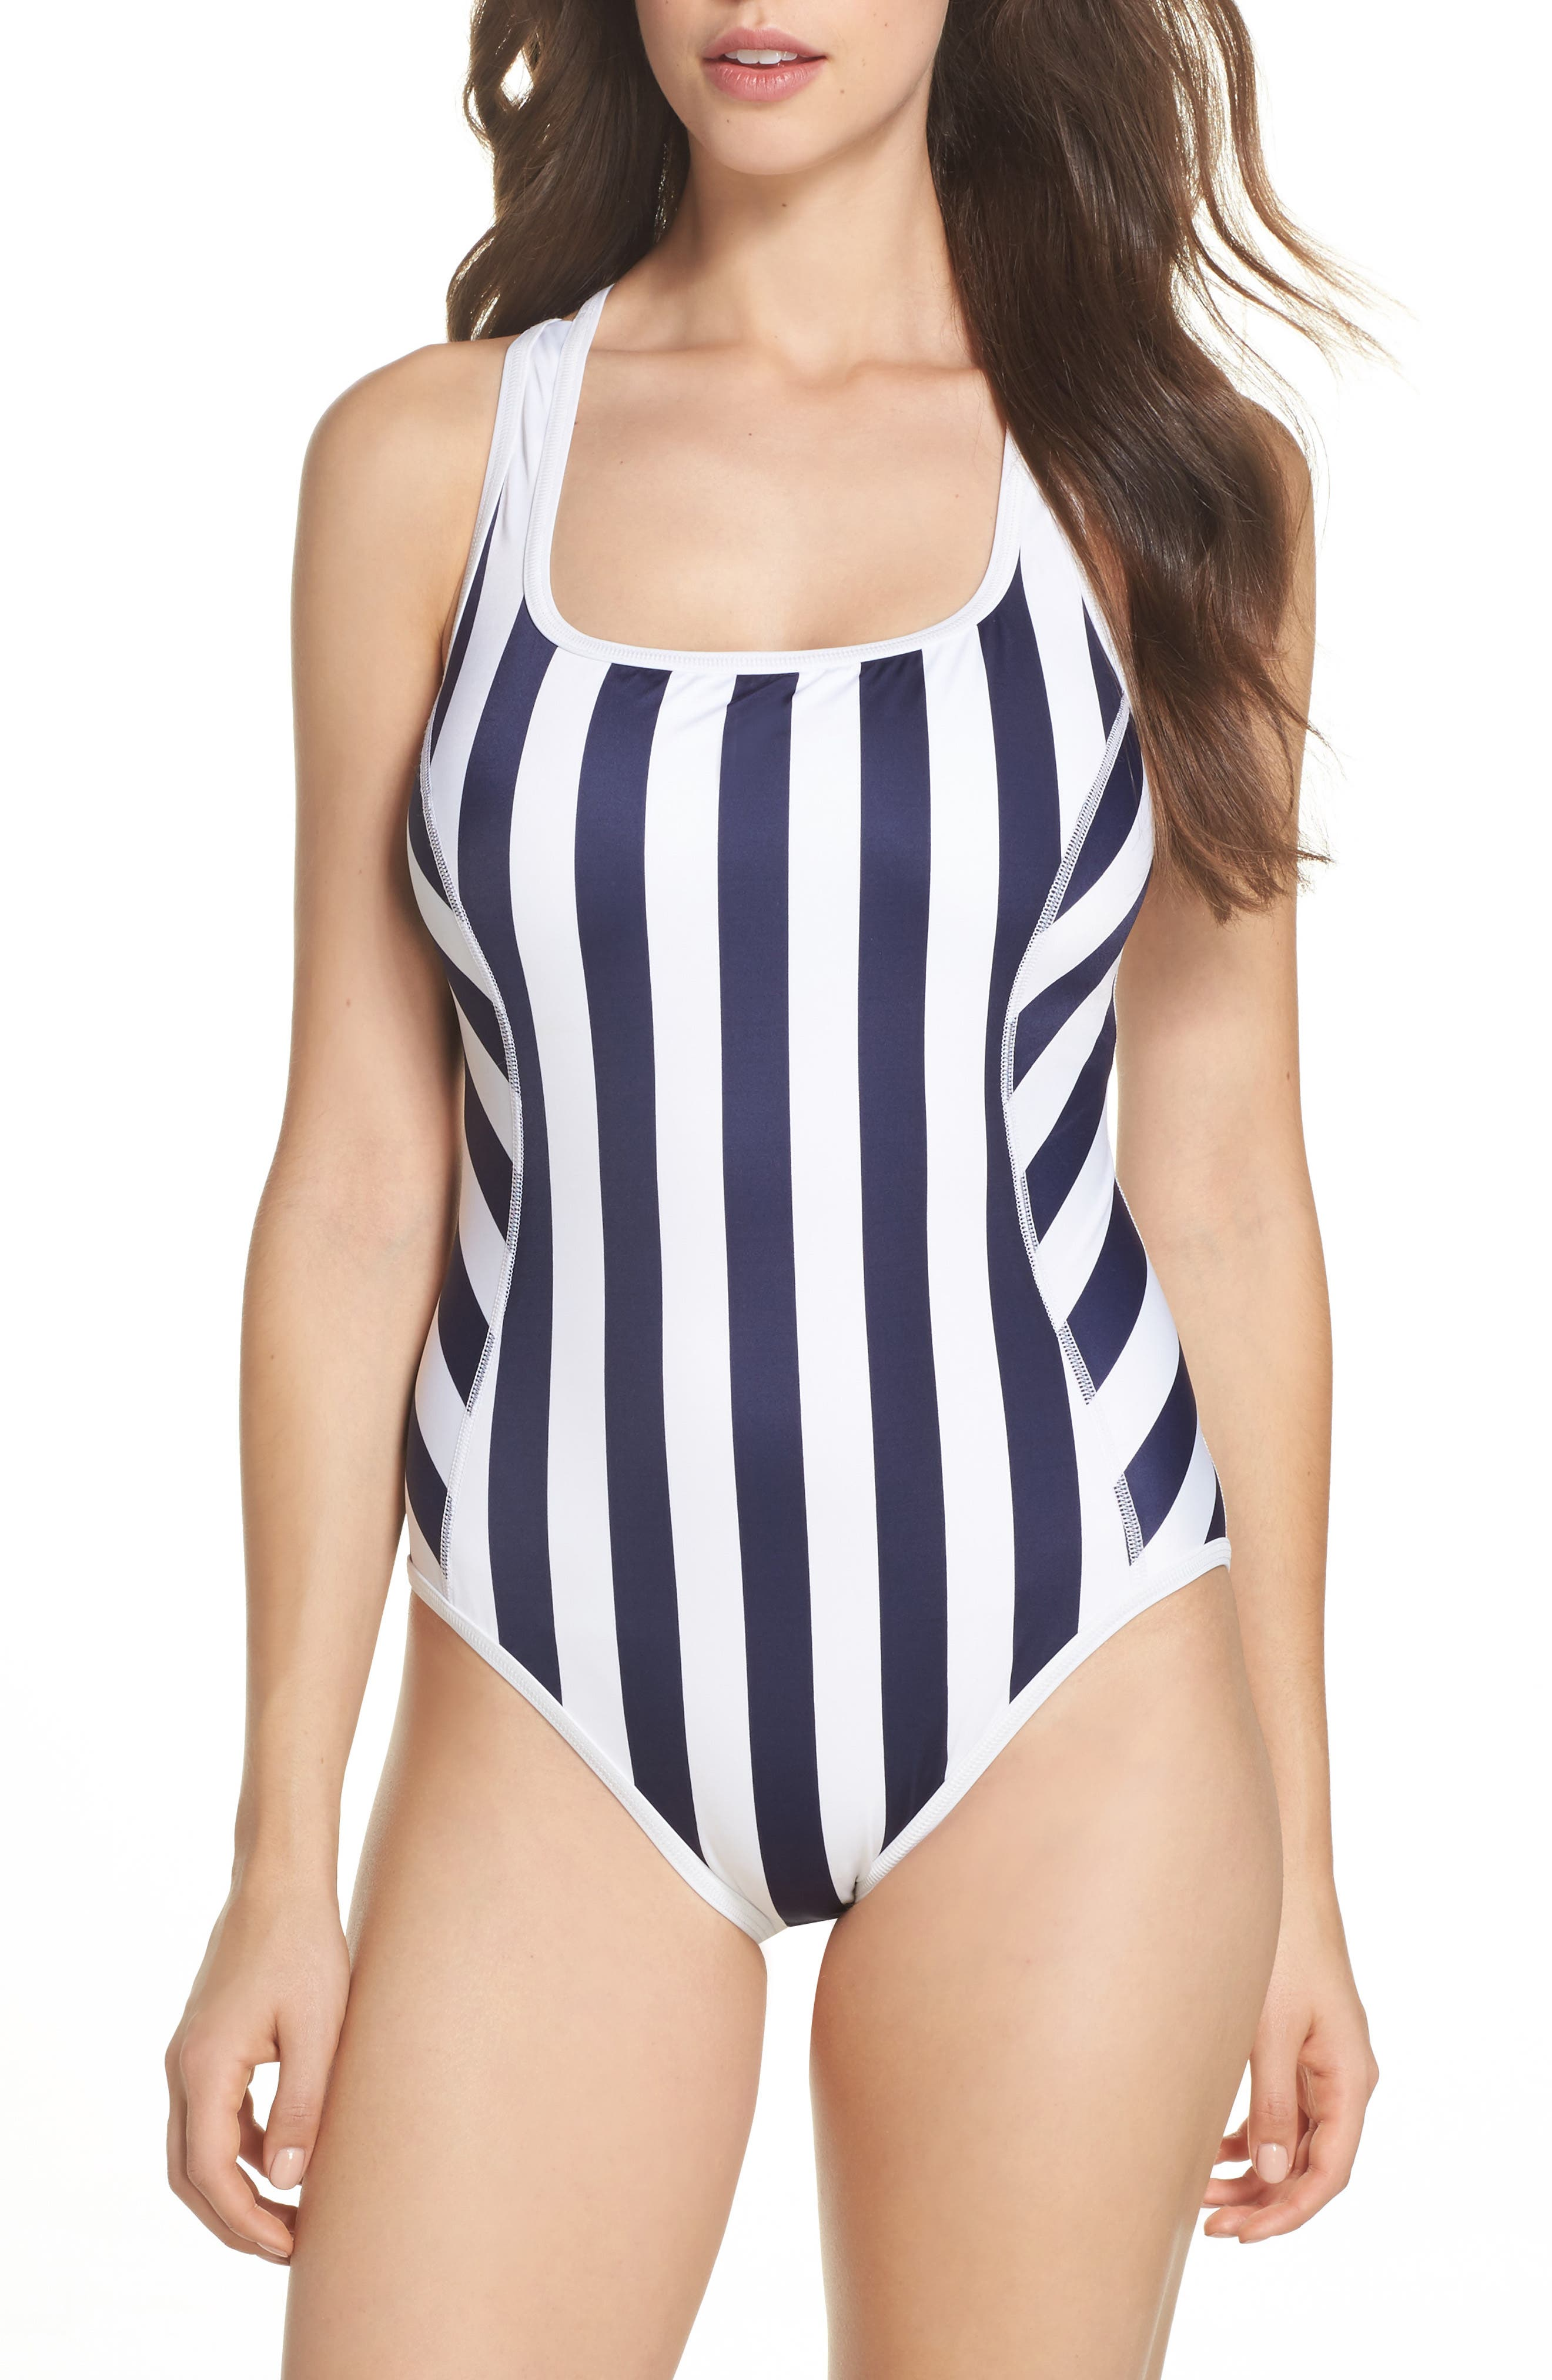 Island Active One-Piece Swimsuit,                         Main,                         color, Mare Navy